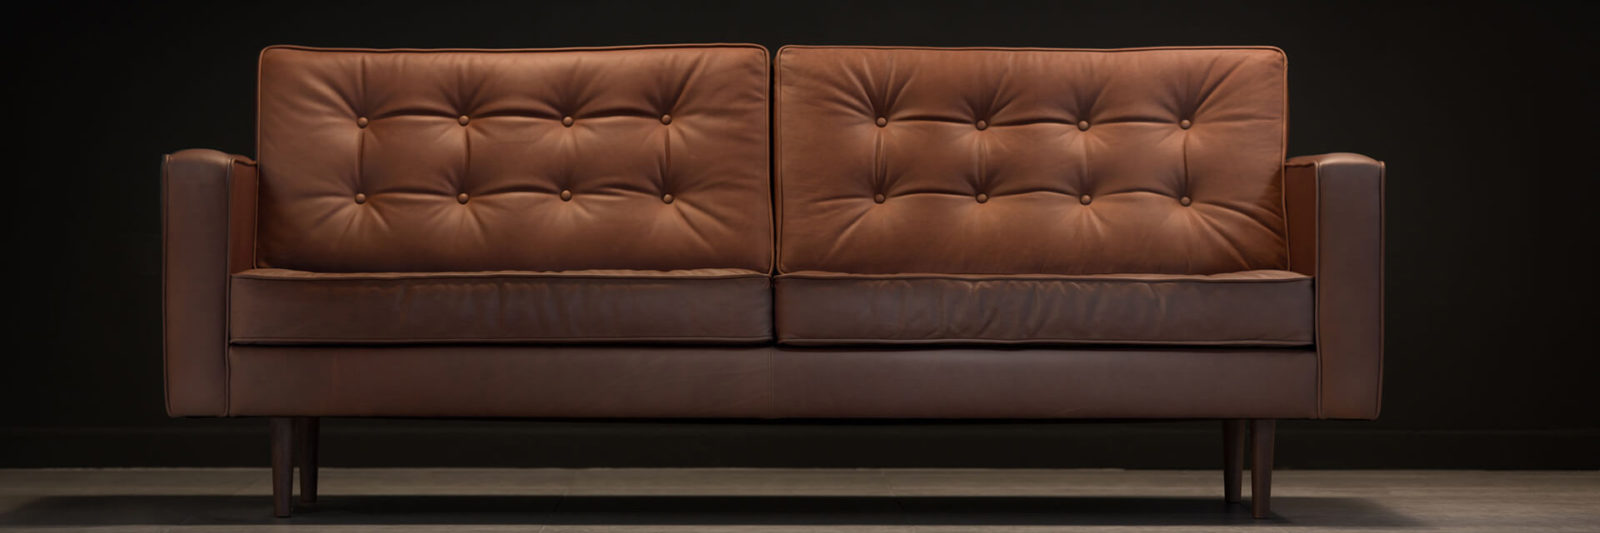 mcqueen sofa buttons front wide banner